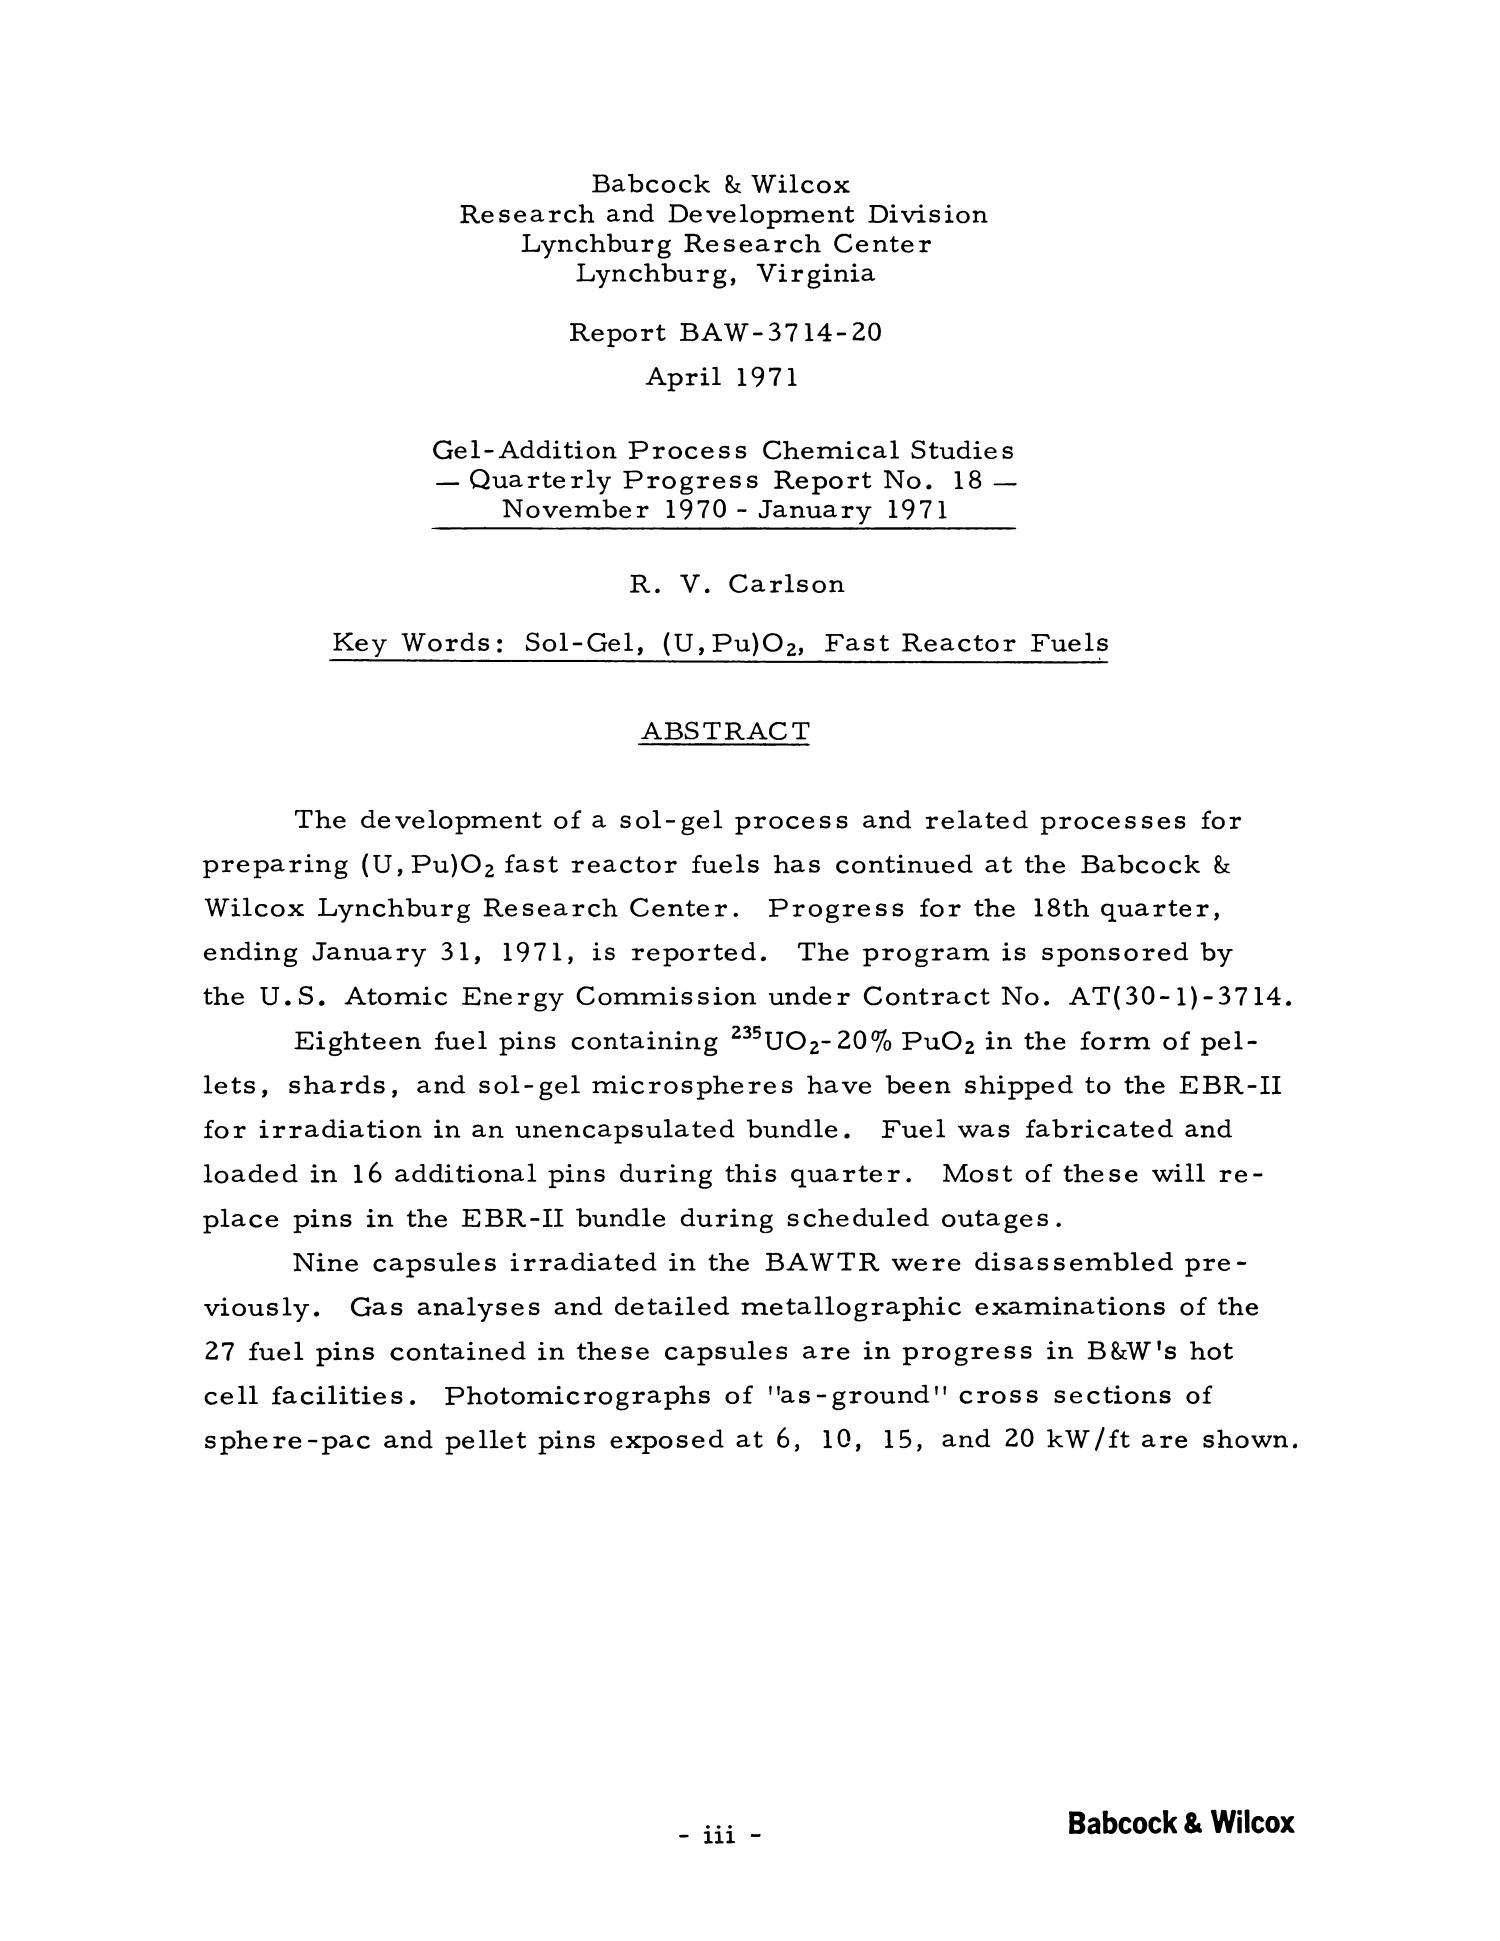 Gel-Addition Process Chemical Studies: Quarterly Progress Report Number 18, November 1970 - January 1971                                                                                                      III